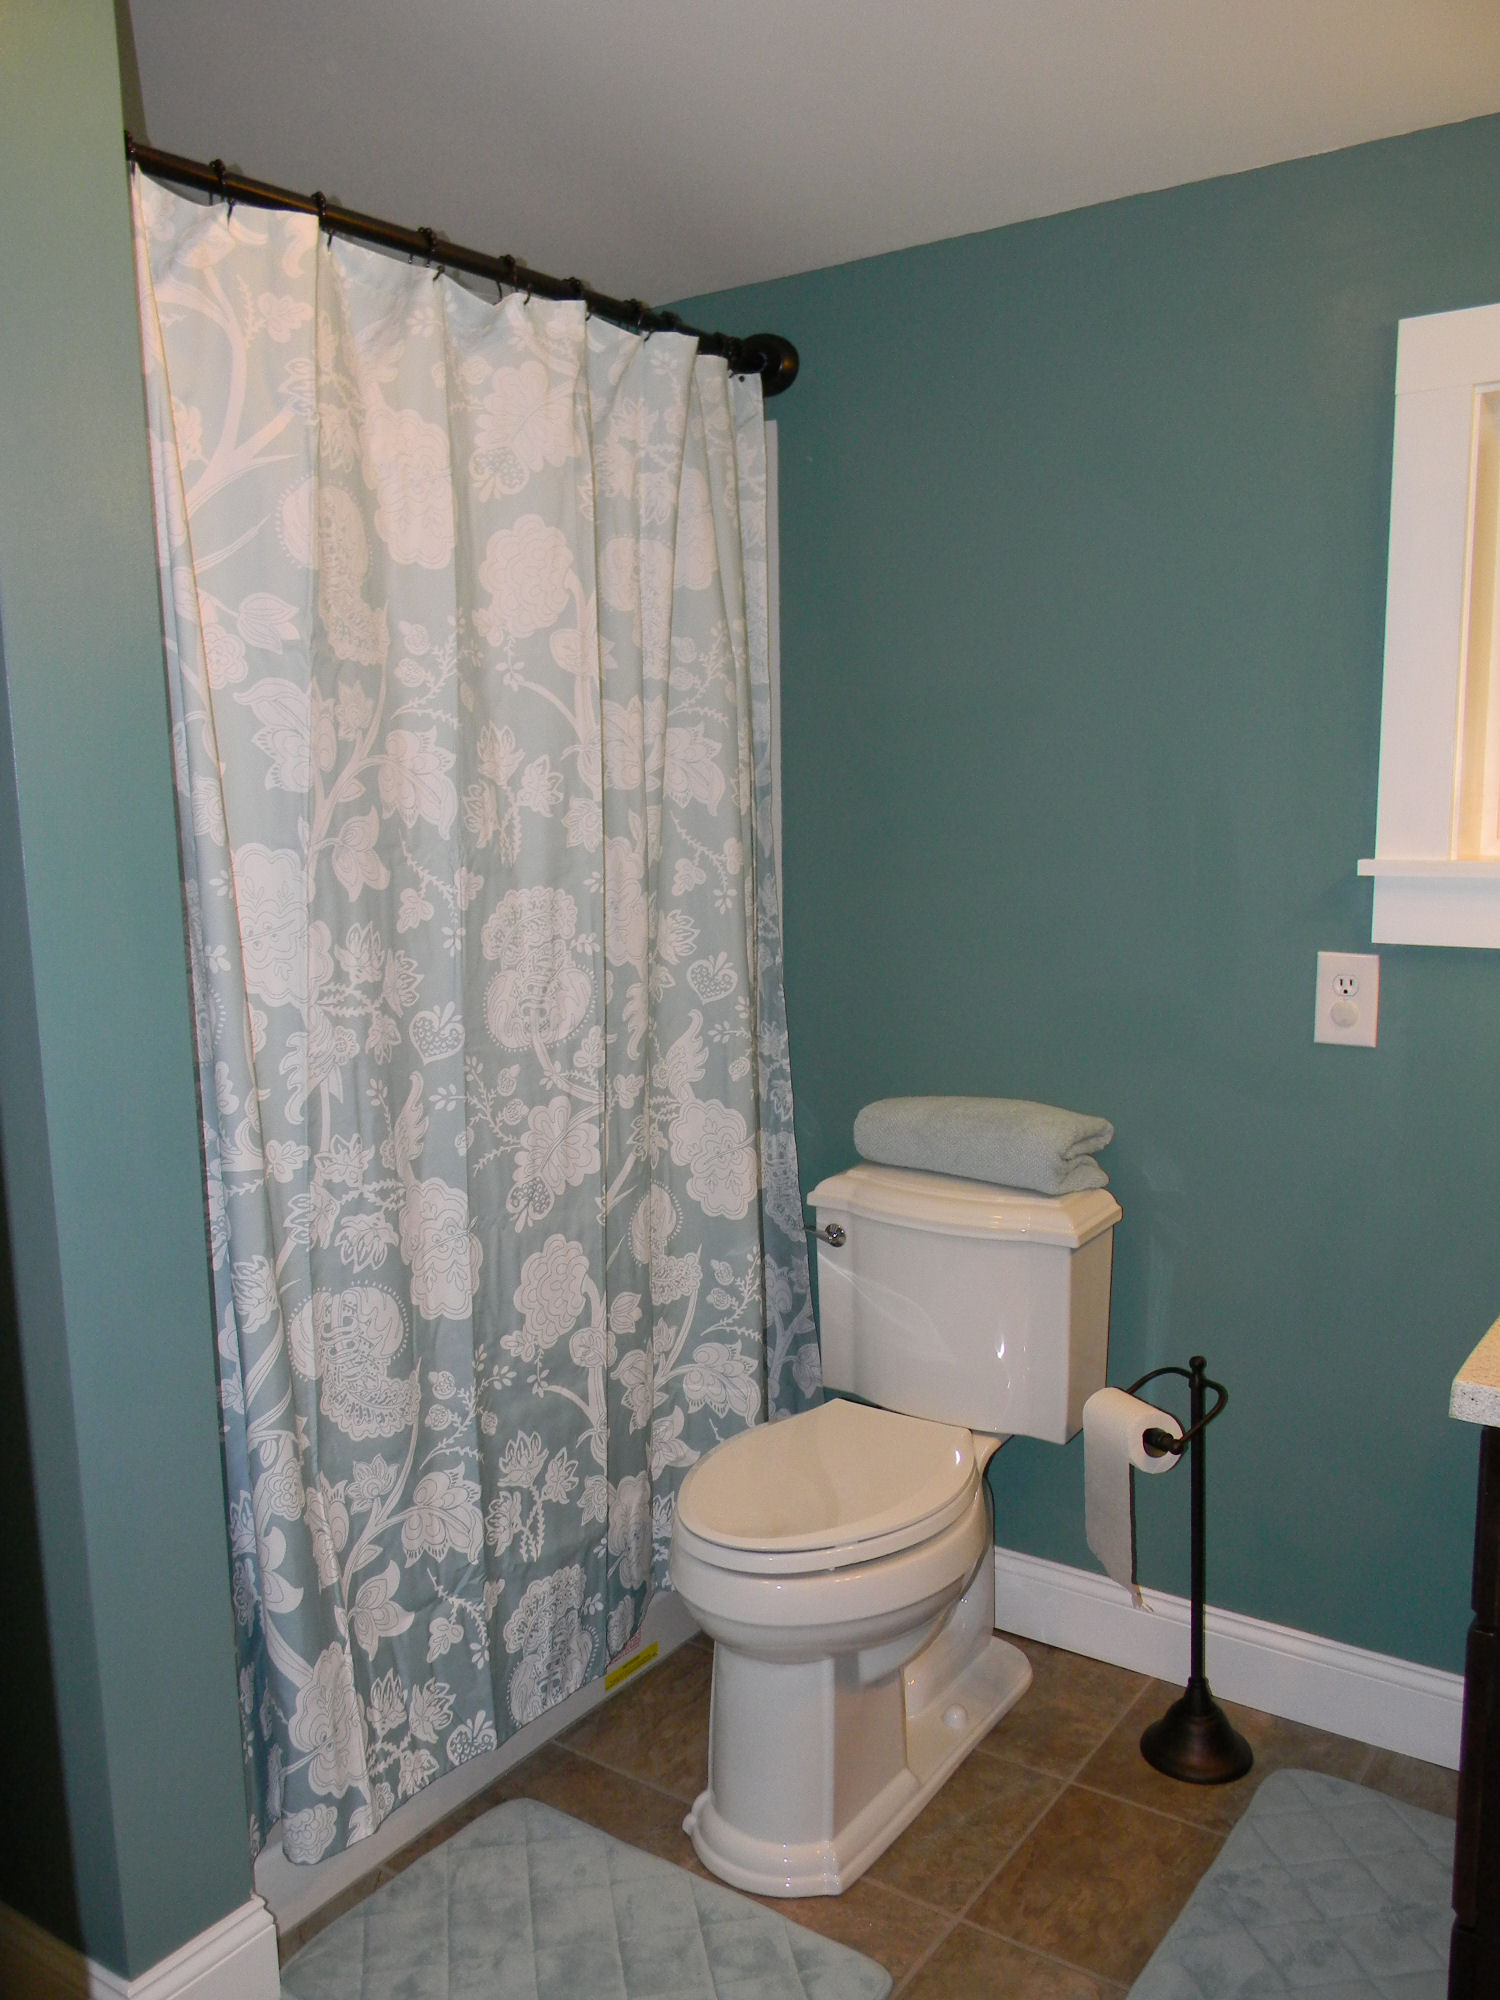 Giving The Throne The Royal Treatment Final Mobile Home Bathroom Remodel My Mobile Home Makeover